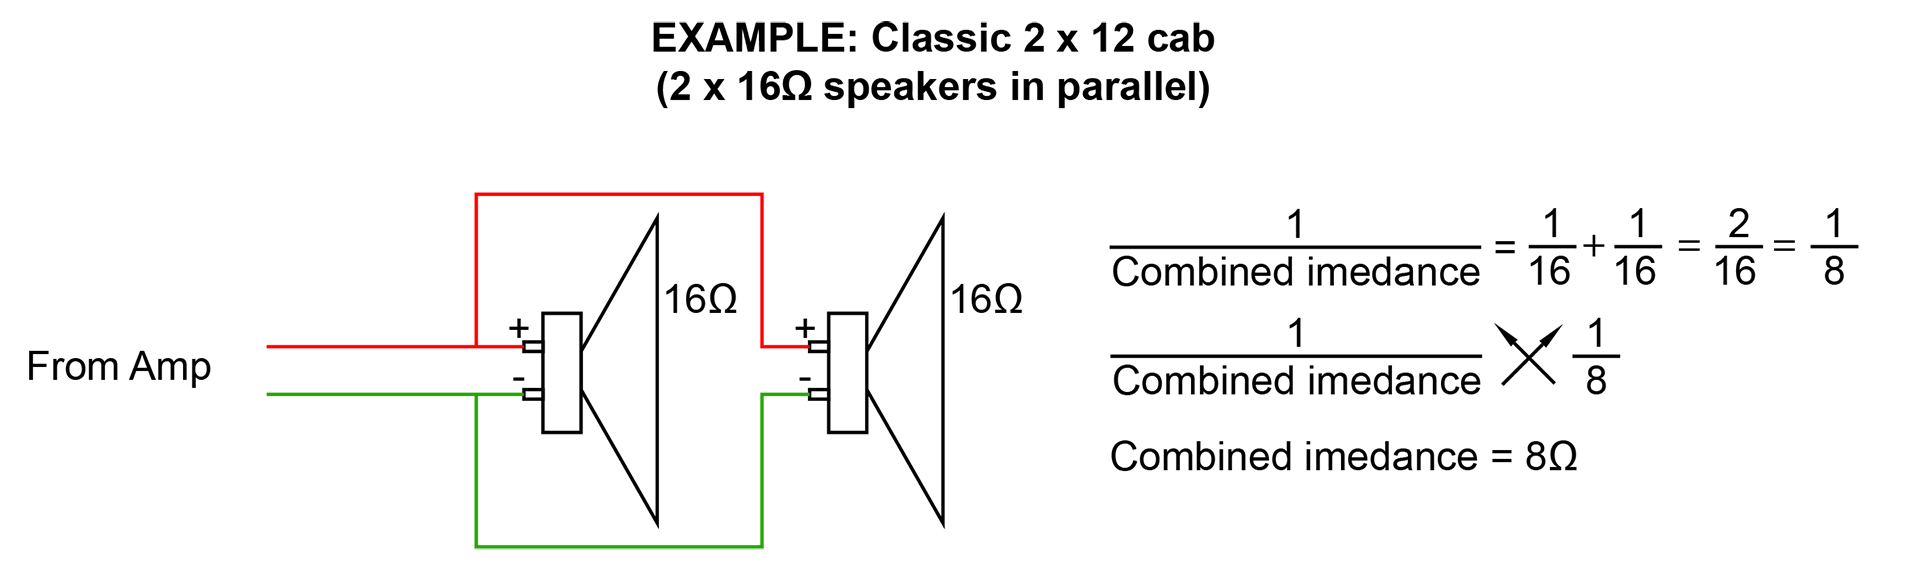 Guitar speaker cab impedance explained - Two Speakers wired in parallel like in a 2 x 12 cab